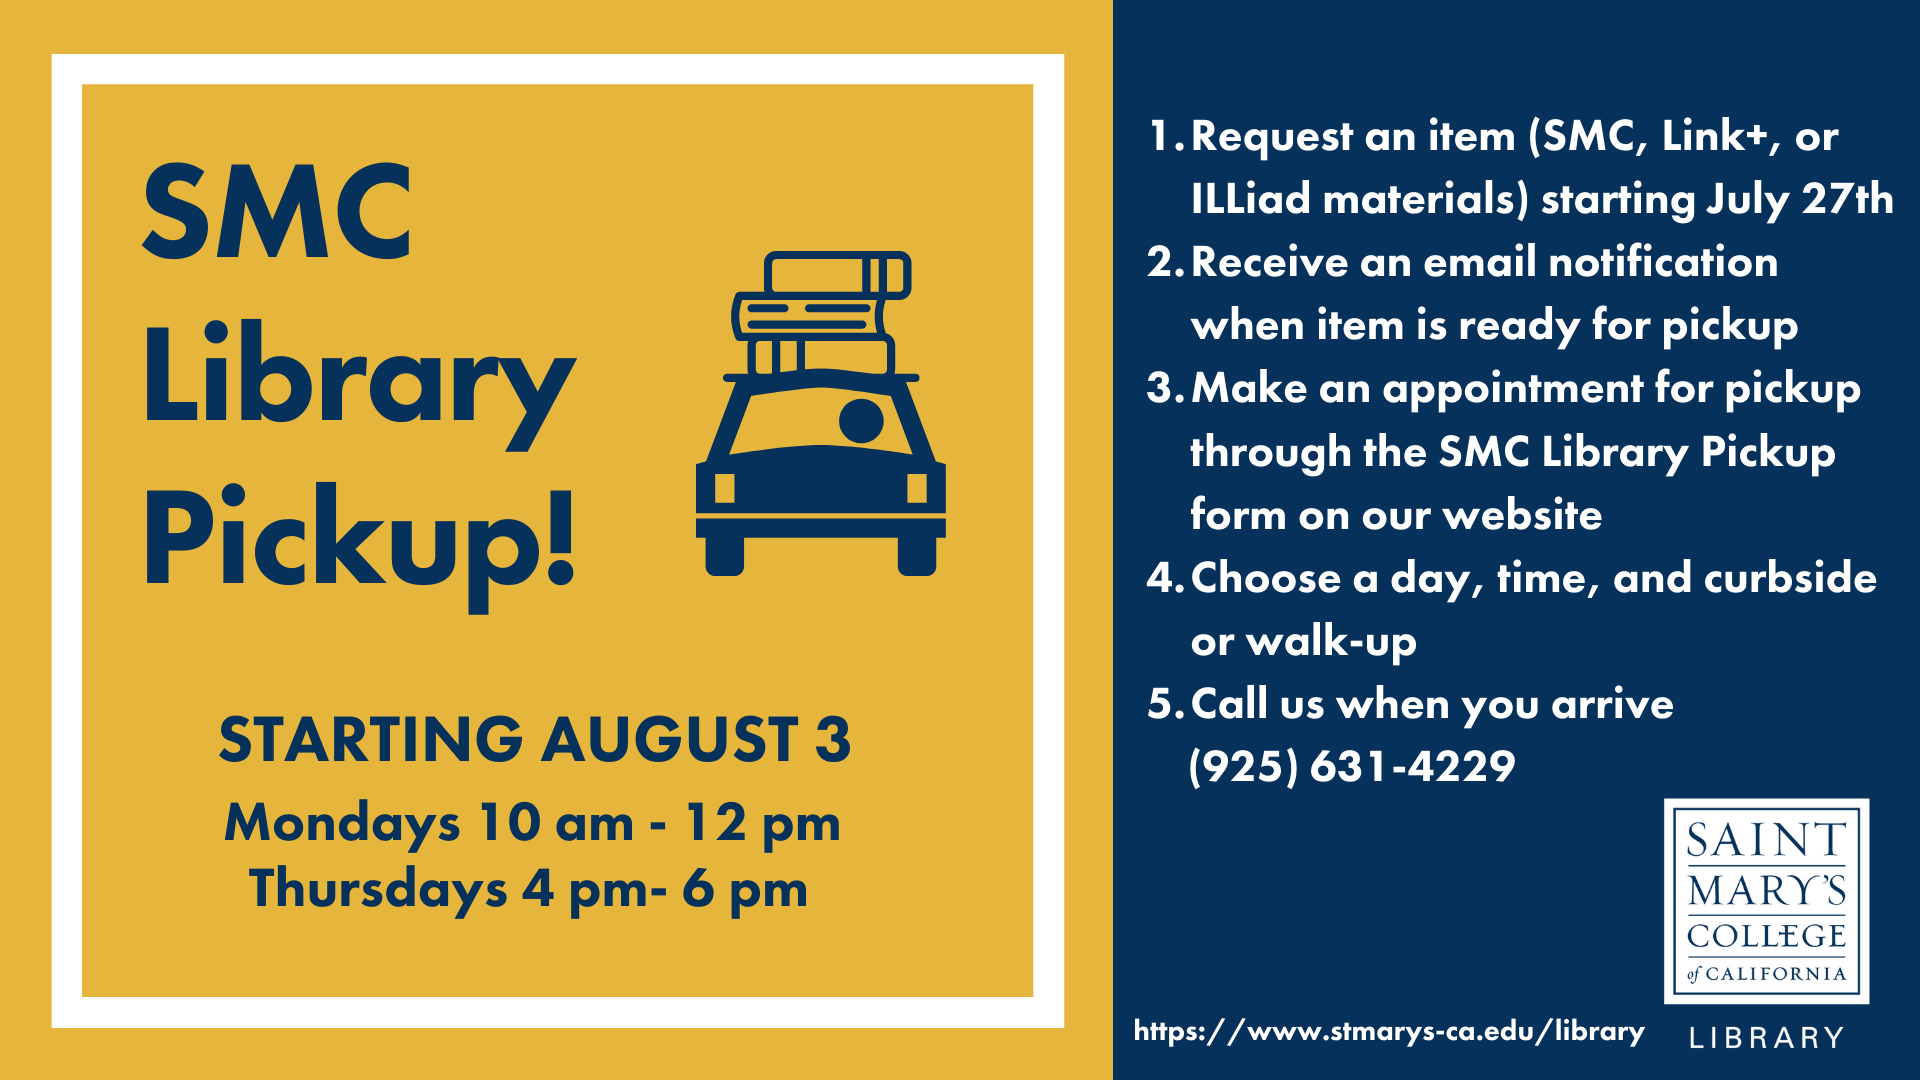 Library pickup service flyer (revised)